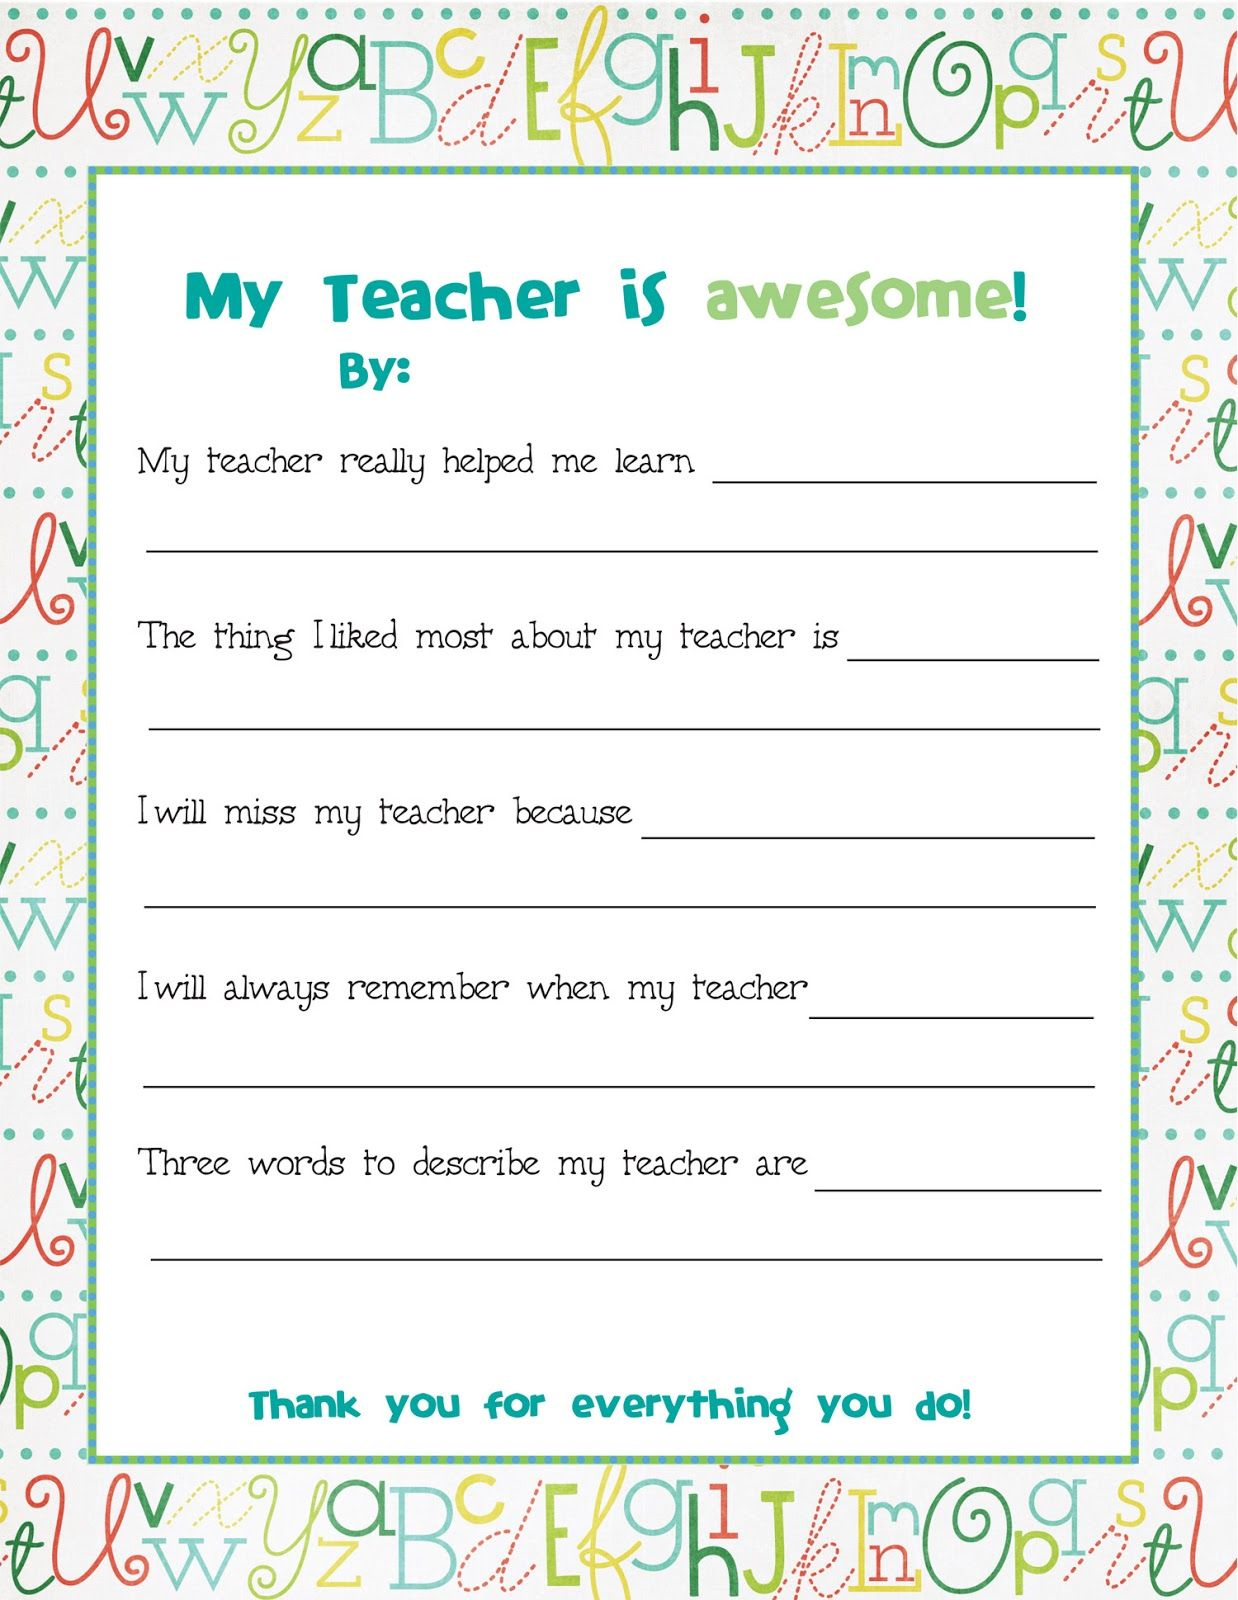 End Of Year Teacher Card Nd This To All The Kids To Fill Out Before School Is Out And Bind